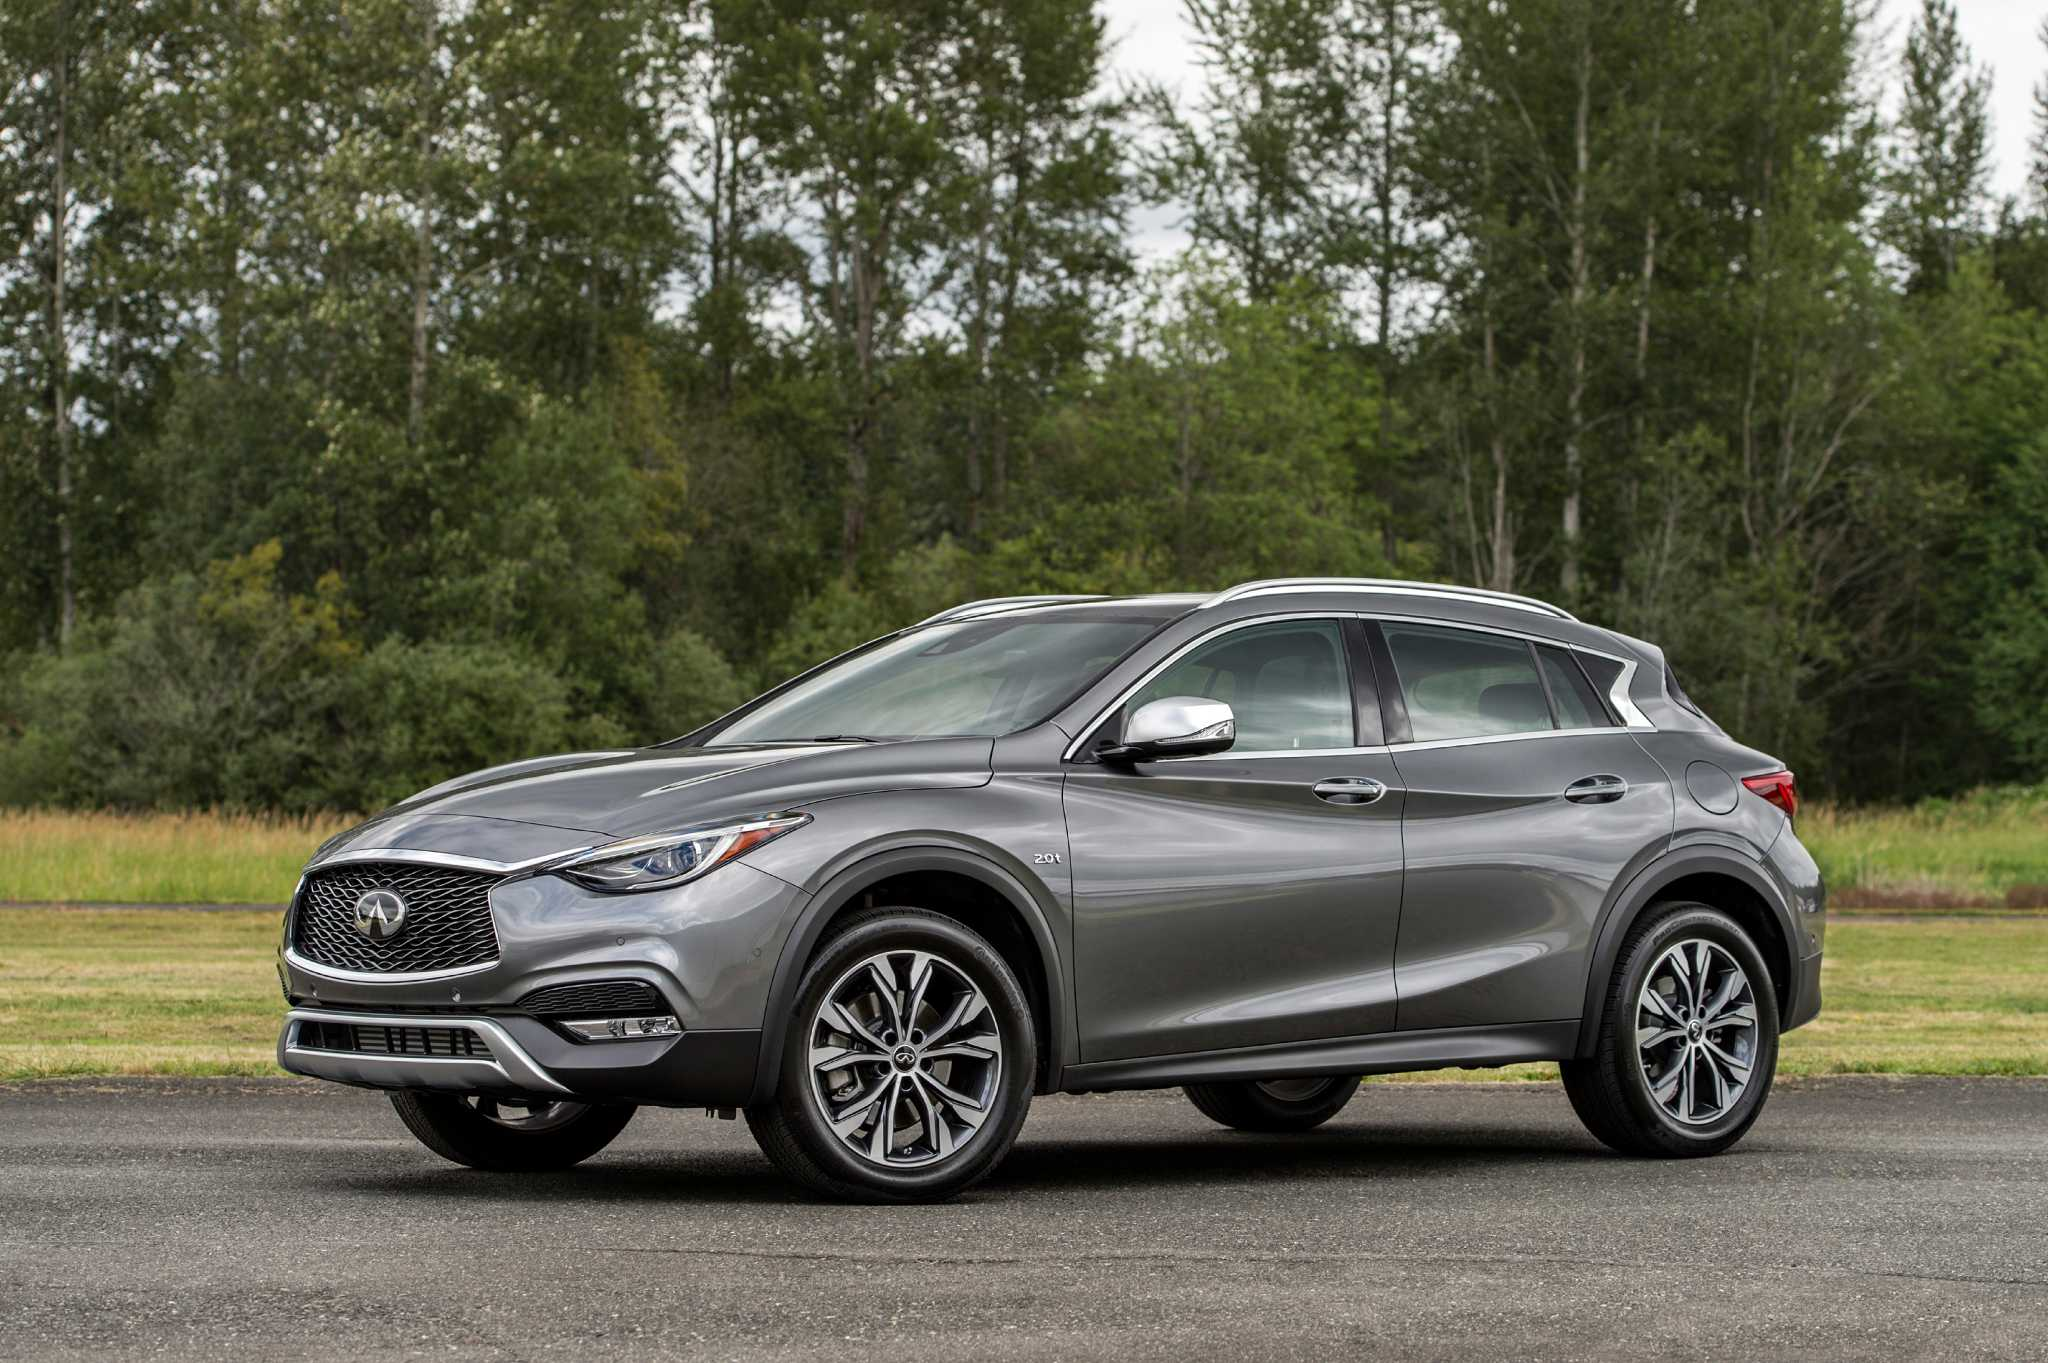 Infiniti jumps into hot compact crossover market with stylish QX30